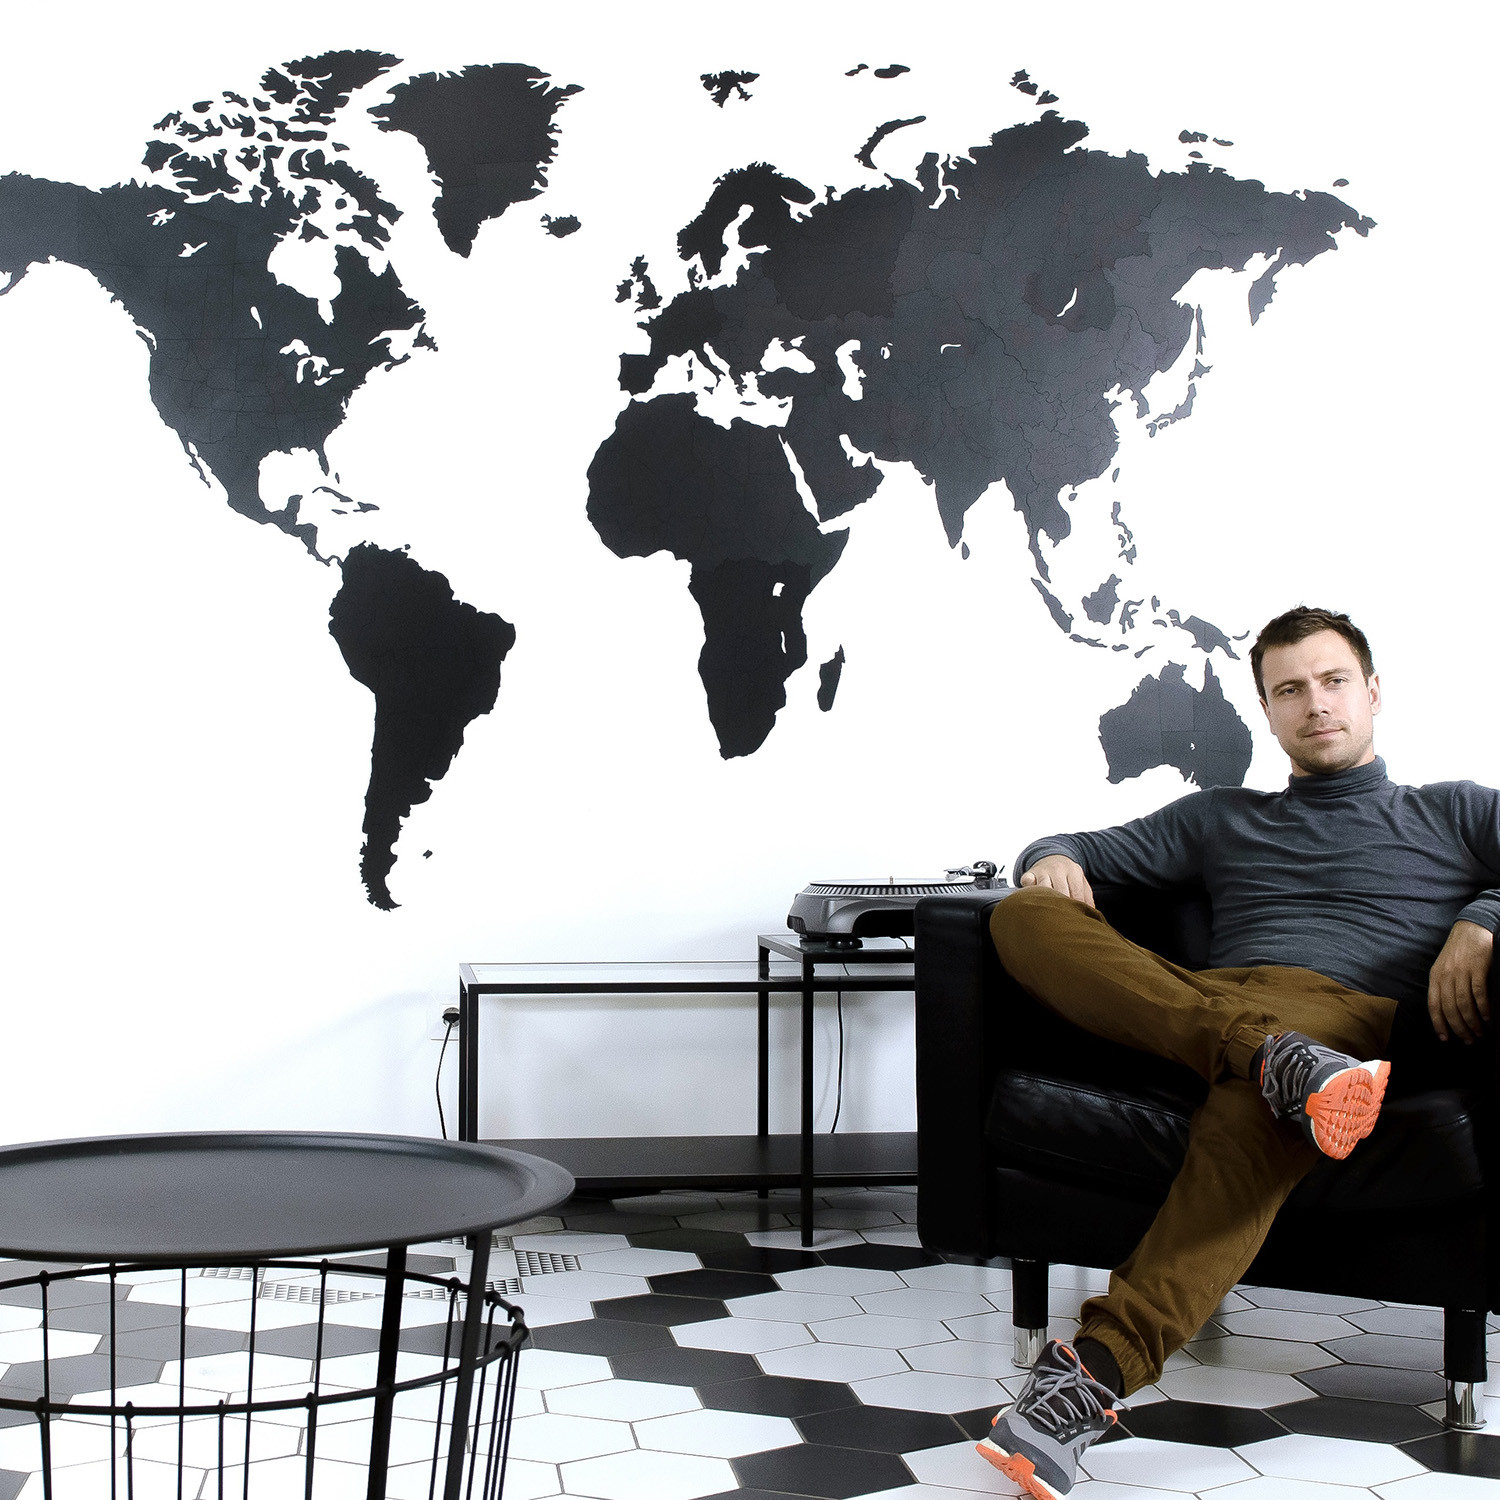 Homizmo Luxury Wooden Wall Map Decoration Giant // Black ... on giant world map mural, giant wall compass, giant detailed world map, wall size world map, ikea wall world map, giant laminated world maps, giant wall numbers, modern wall world map, wall sticker world map,